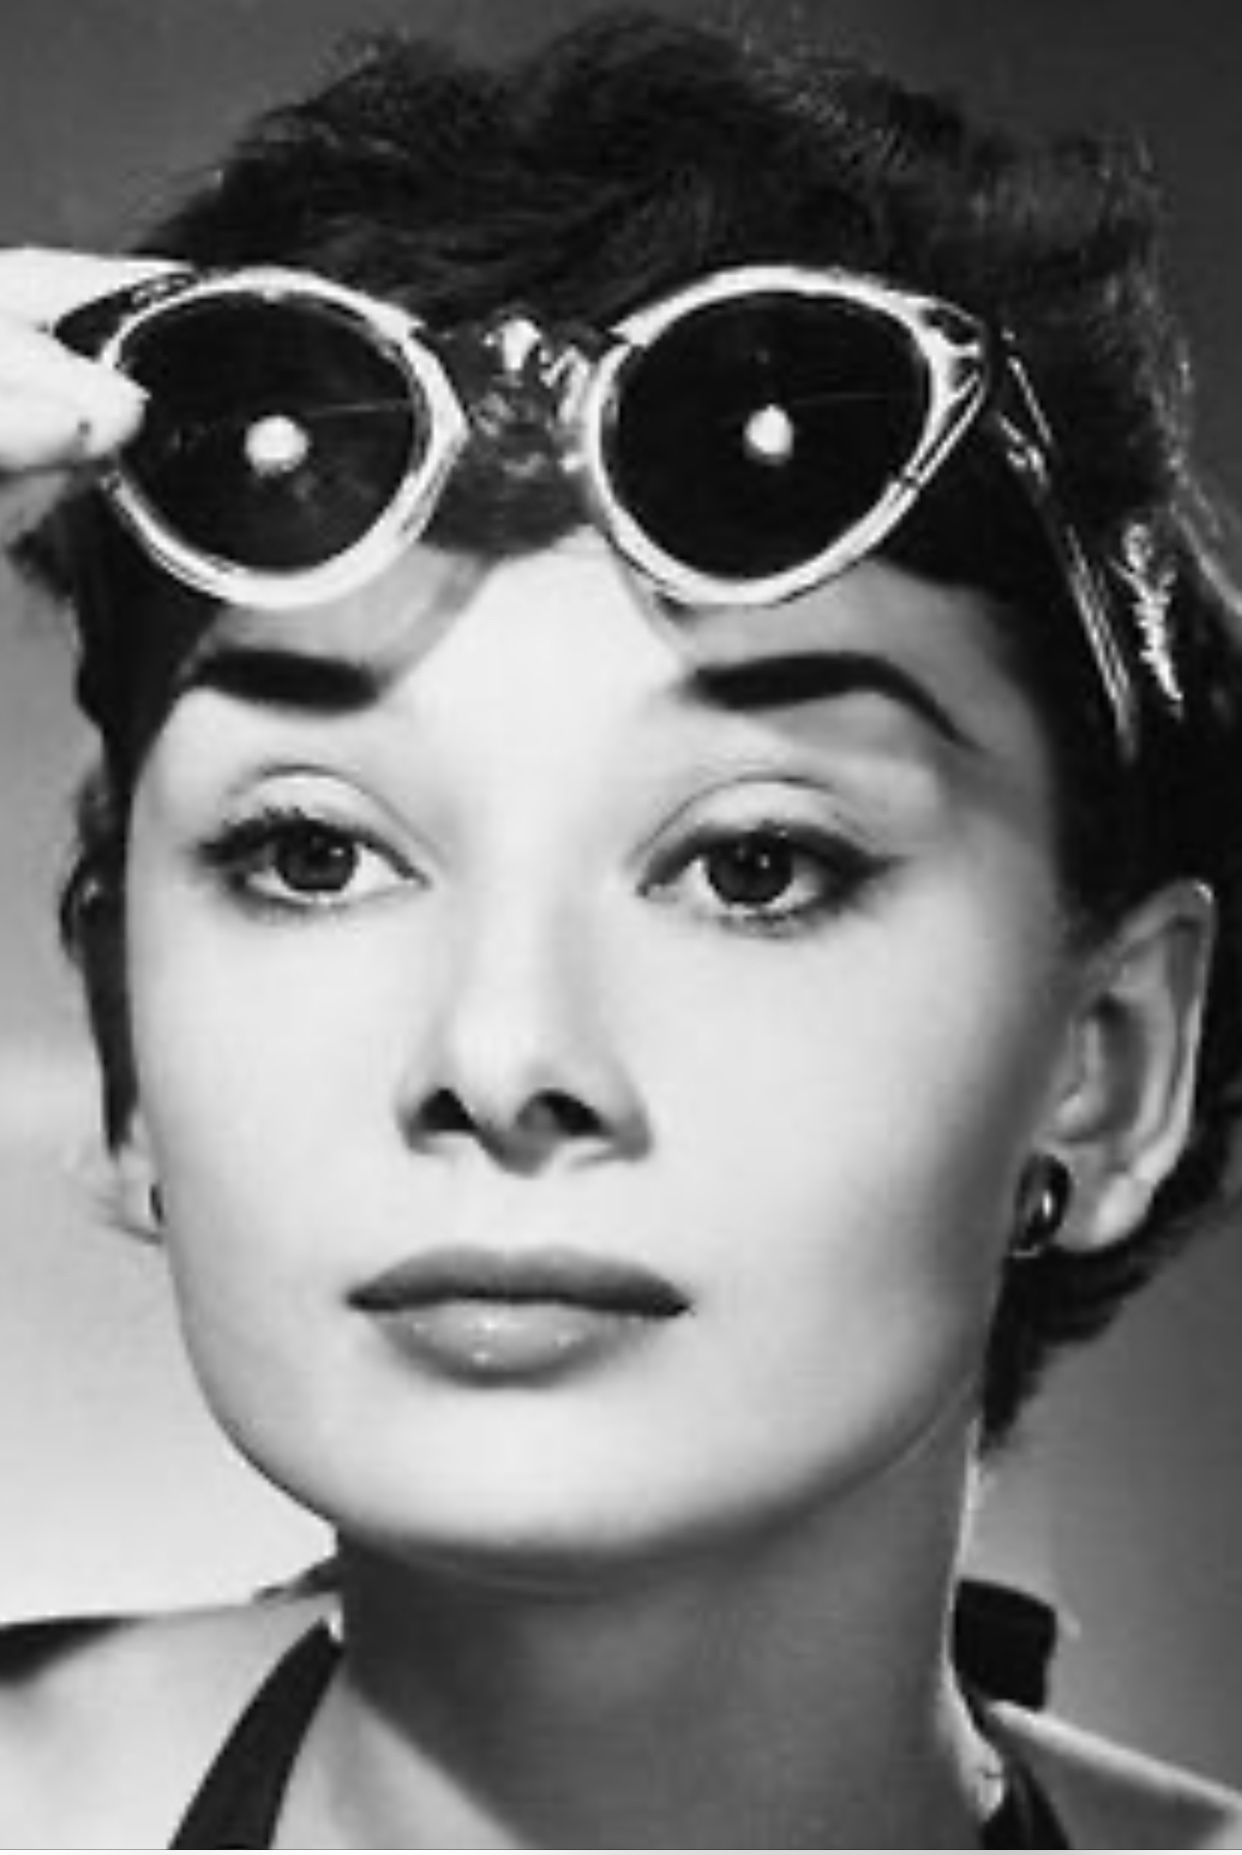 Audrey Hepburn May Not Have Invented The Cat Eye Look But